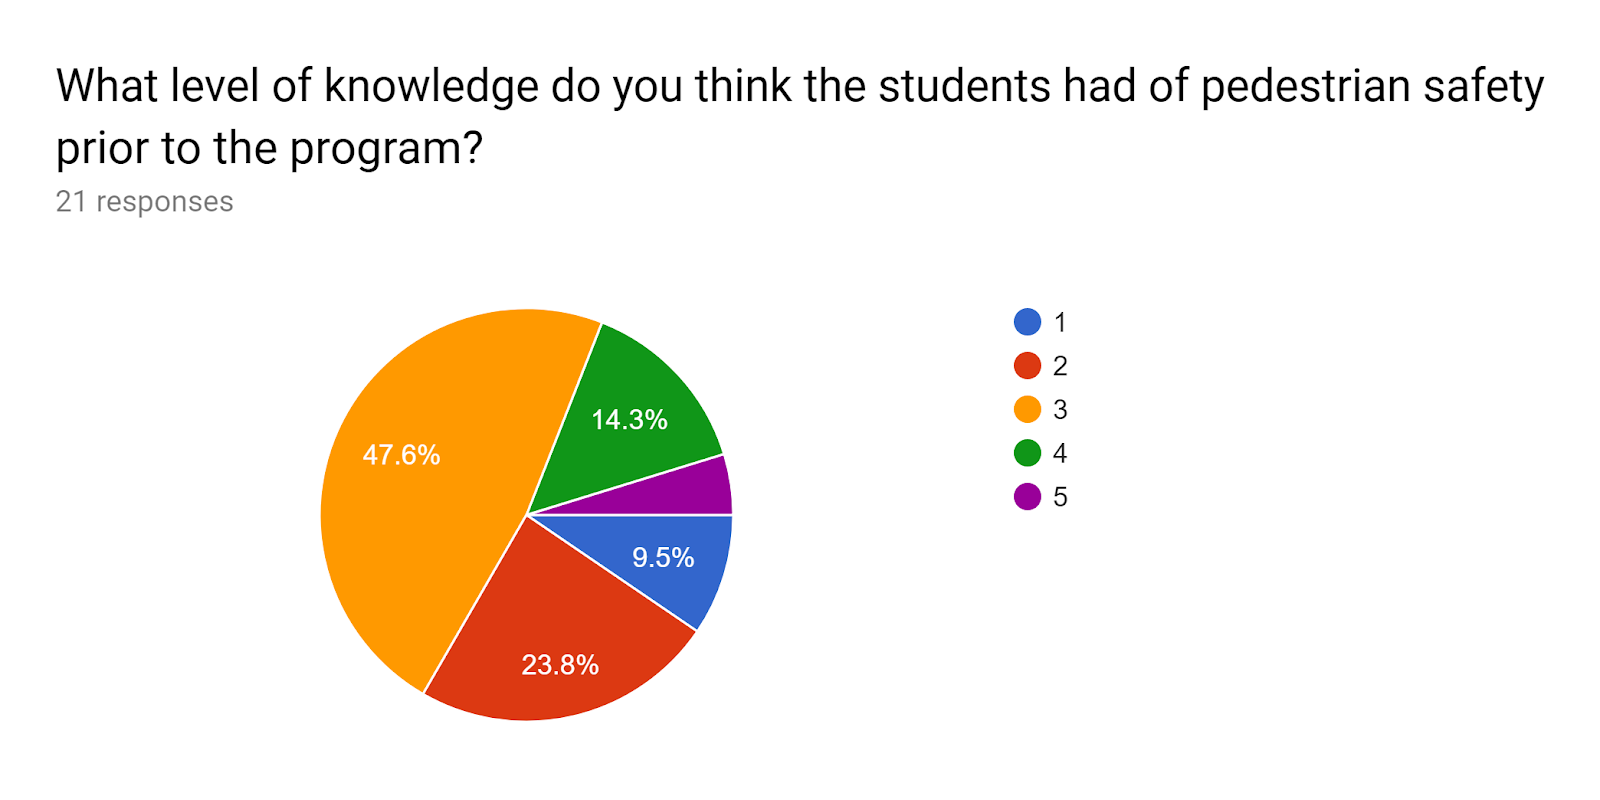 Forms response chart. Question title: What level of knowledge do you think the students had of pedestrian safety prior to the program?. Number of responses: 21 responses.